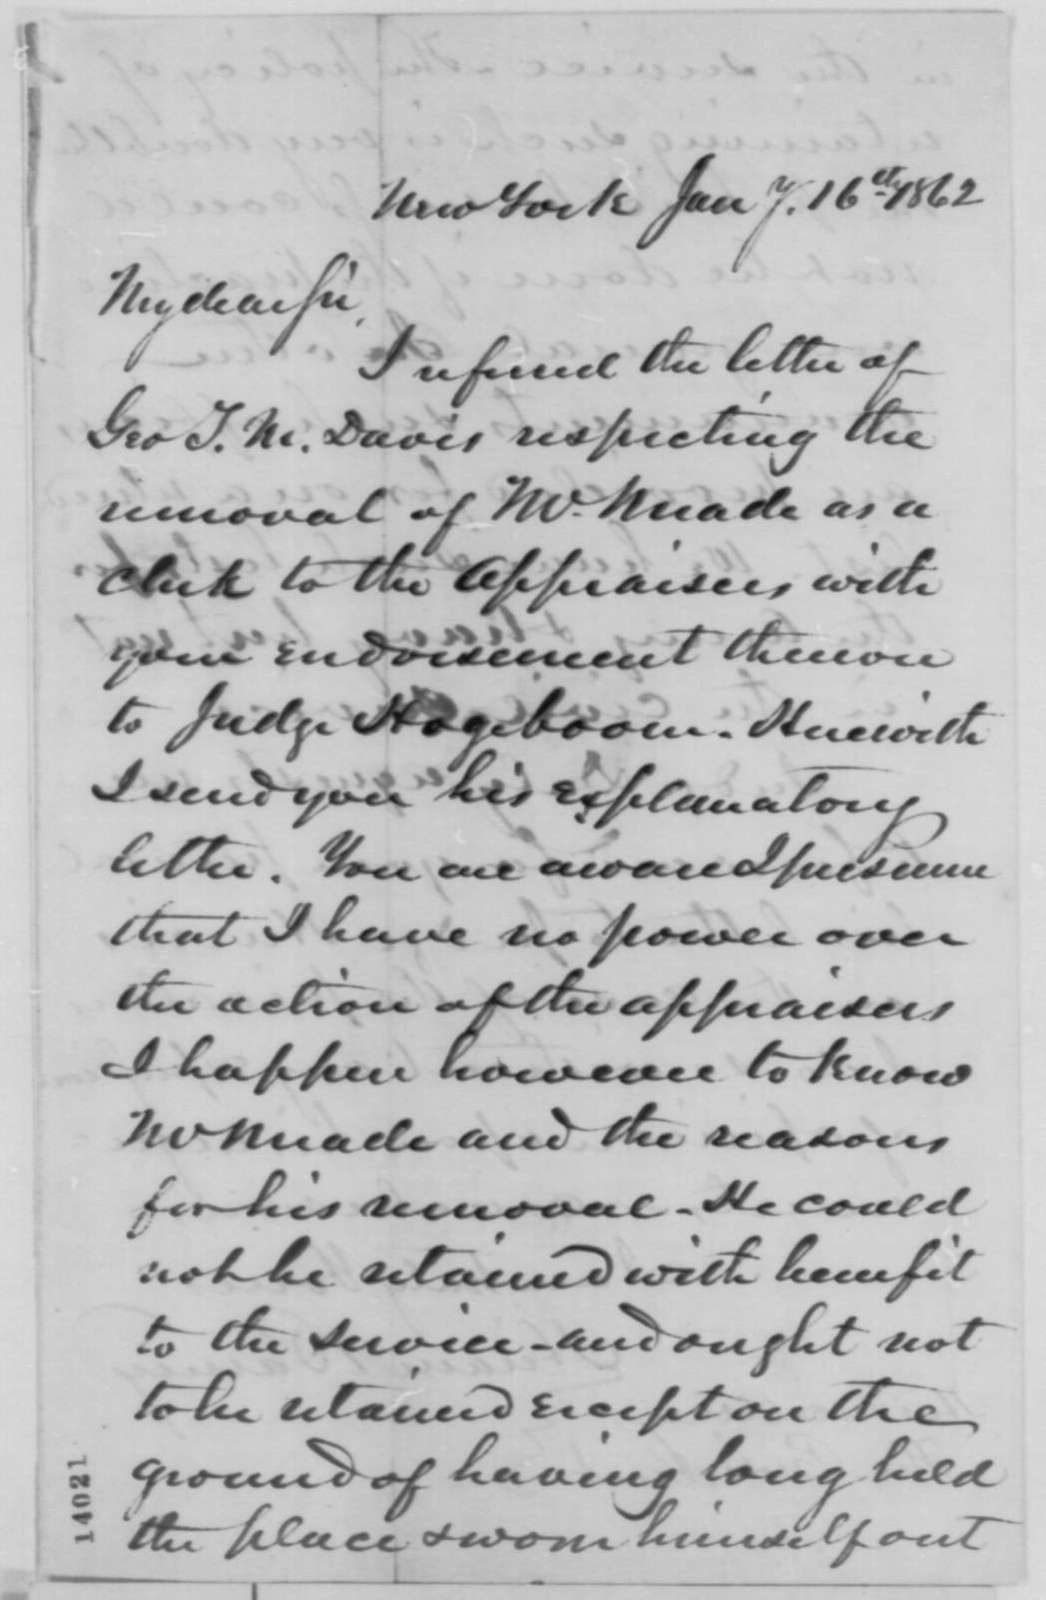 Hiram Barney to Abraham Lincoln, Thursday, January 16, 1862  (Removal of a clerk)